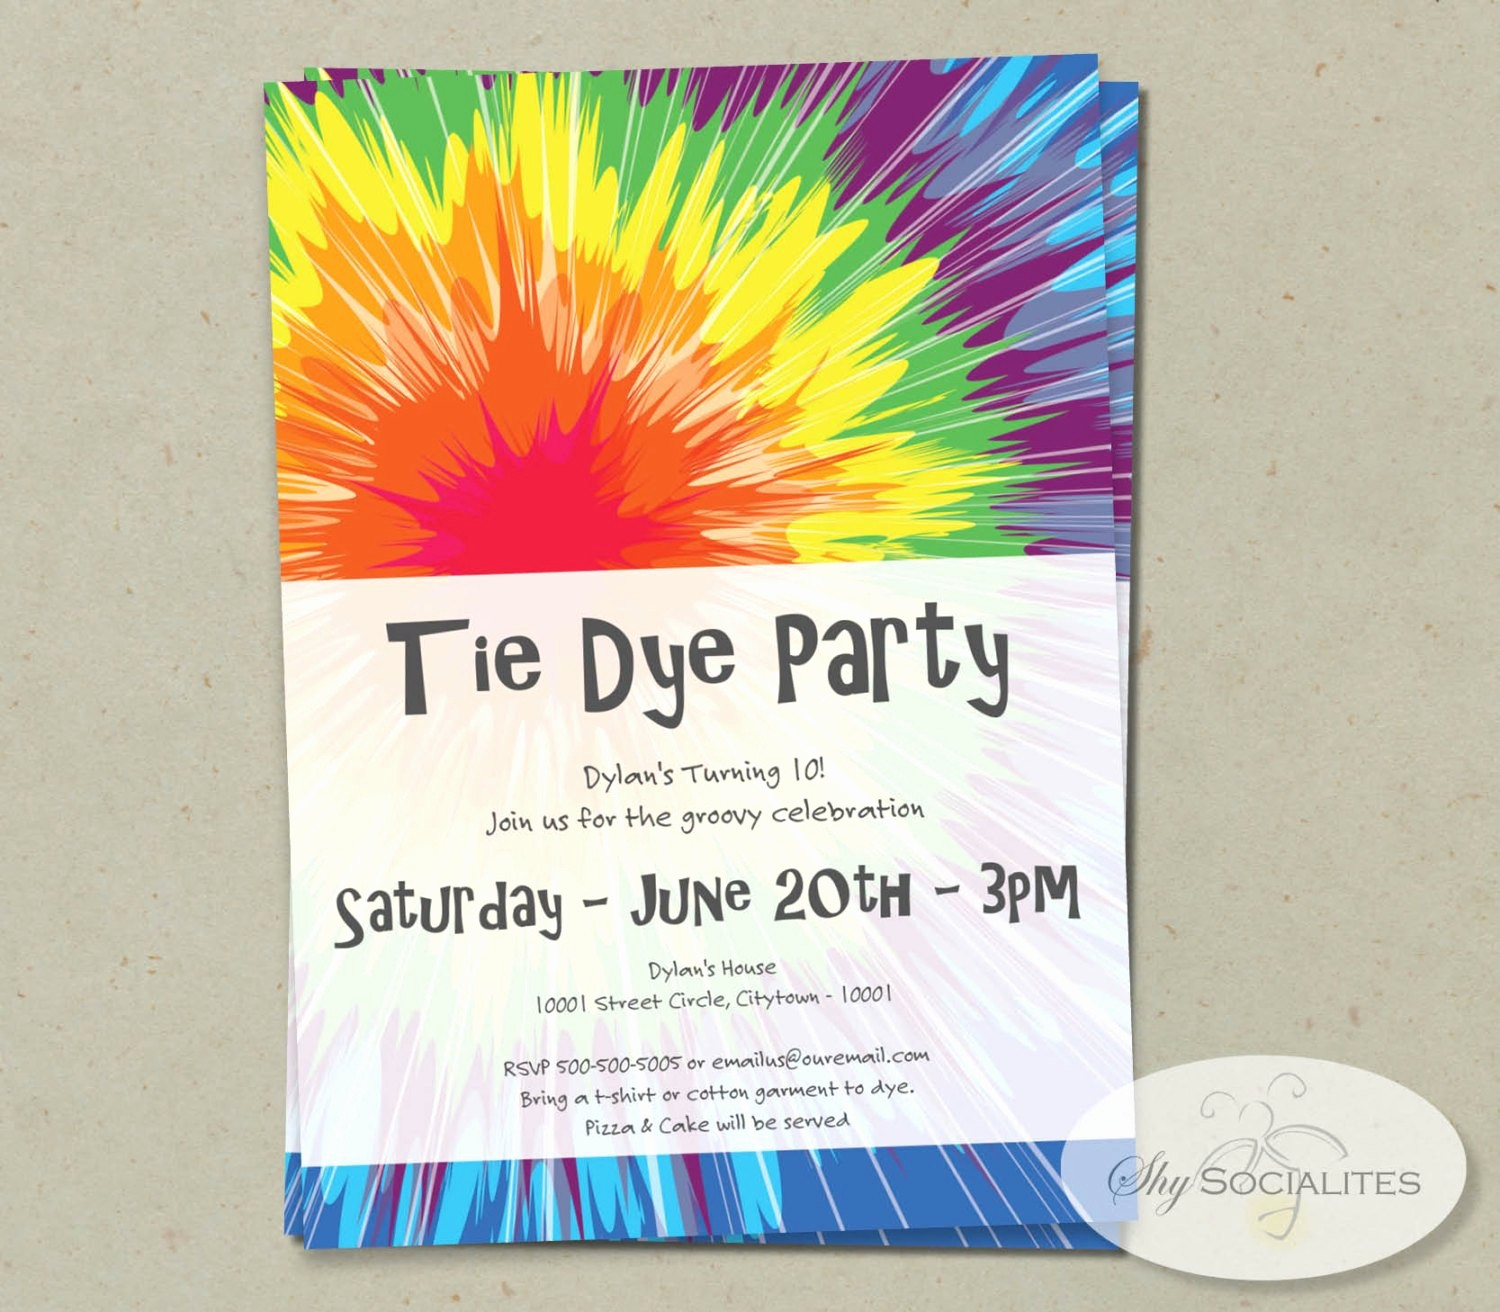 Tie Dye Party Invitations Printable Elegant Tie Dye Invitation Instant Download Editable Text Pdf that